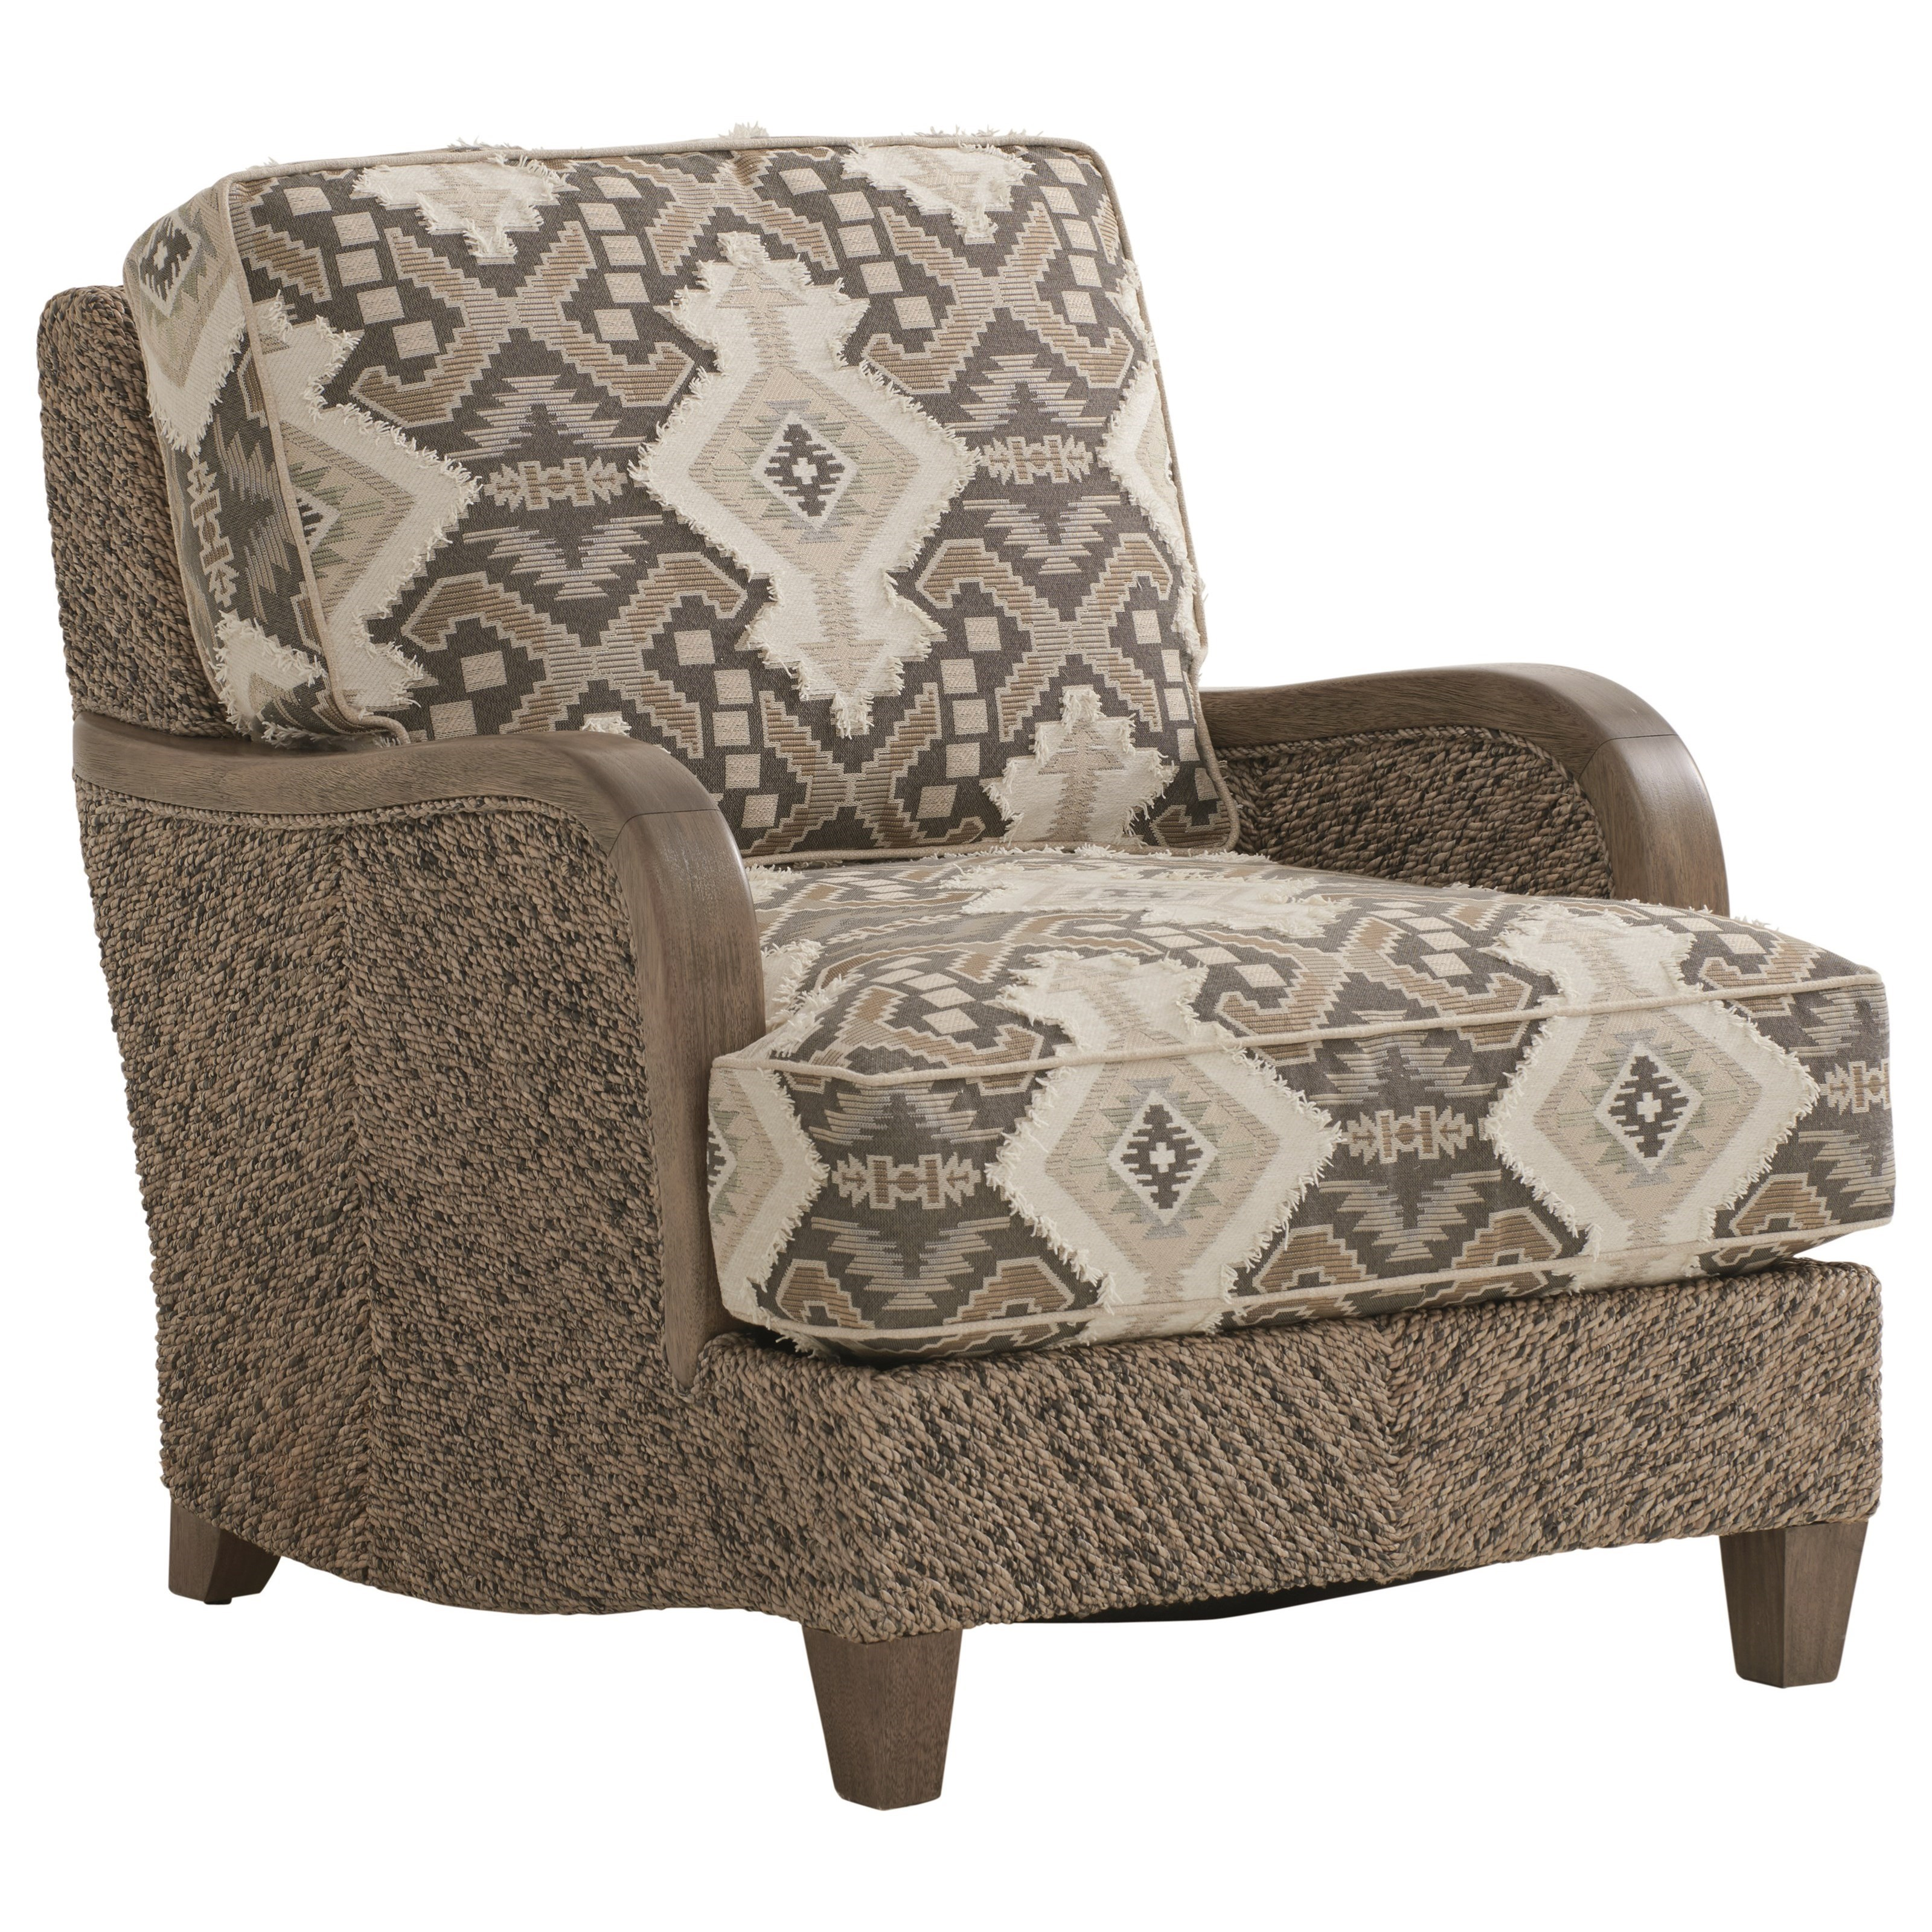 Barclay Butera Upholstery Thayer Chair by Barclay Butera at Baer's Furniture